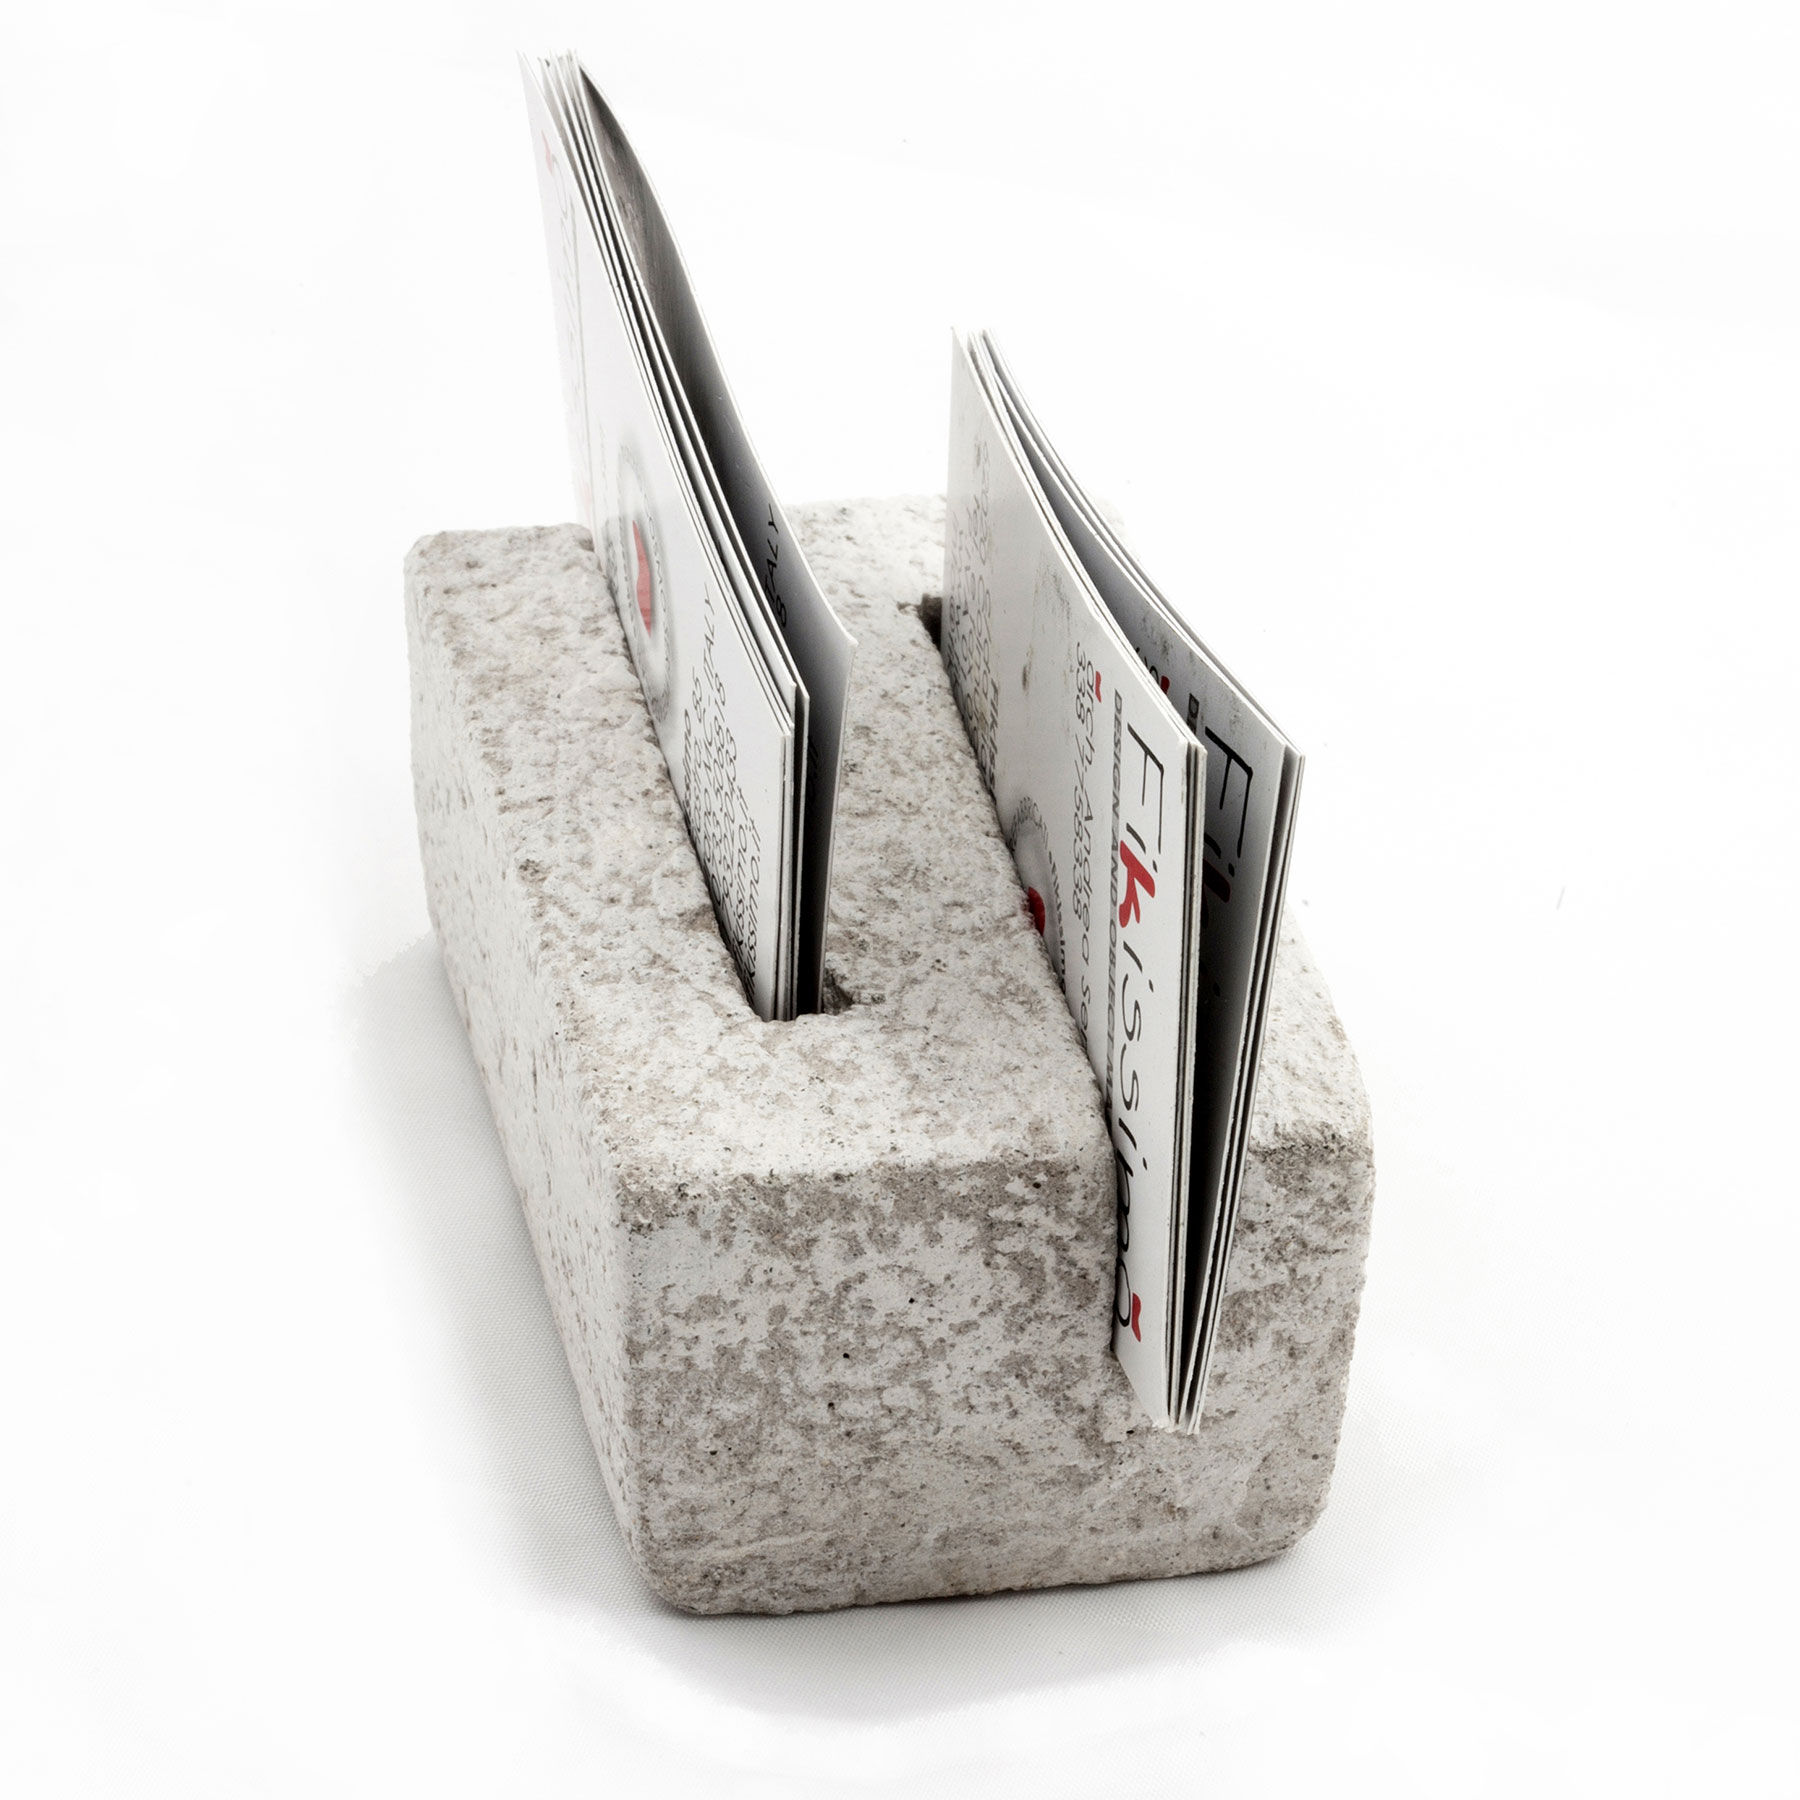 business card holder made in cement